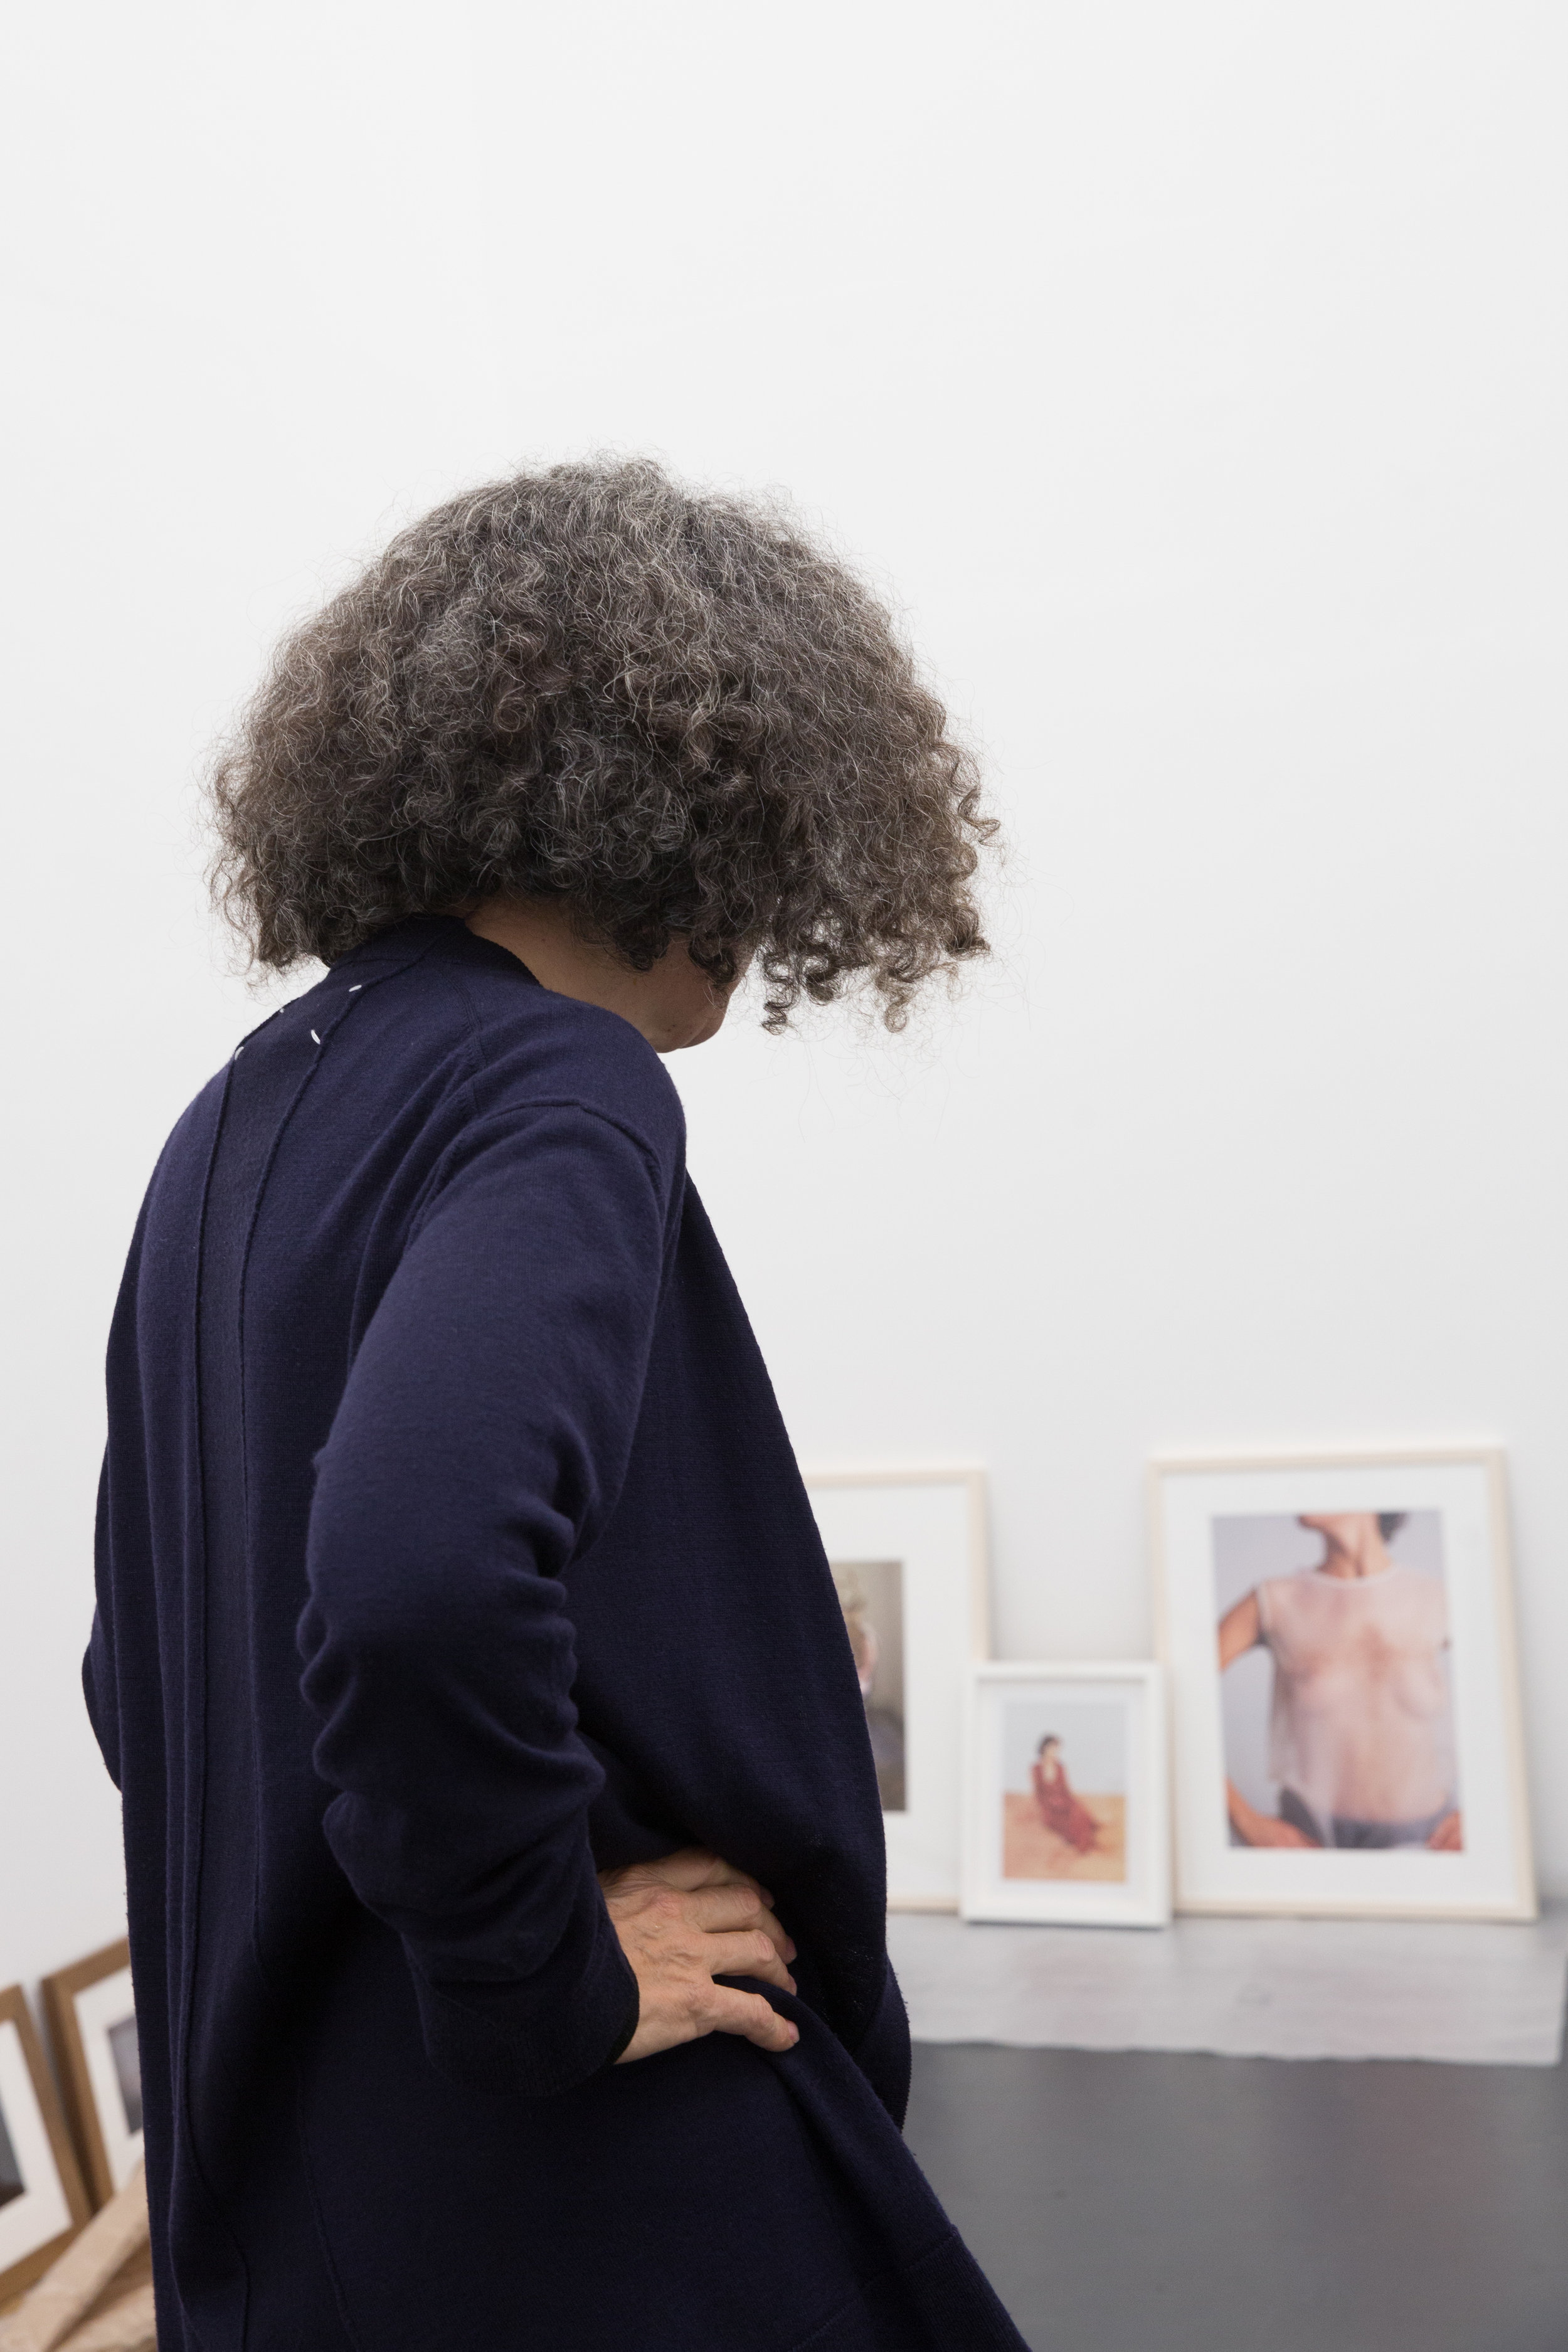 """Exhibition setup """"I´ve decided to be Happy because it´s good for one´s health"""" by Jana Sterbak, Galerie Steinek, 2016, Photo: eSeL.at"""